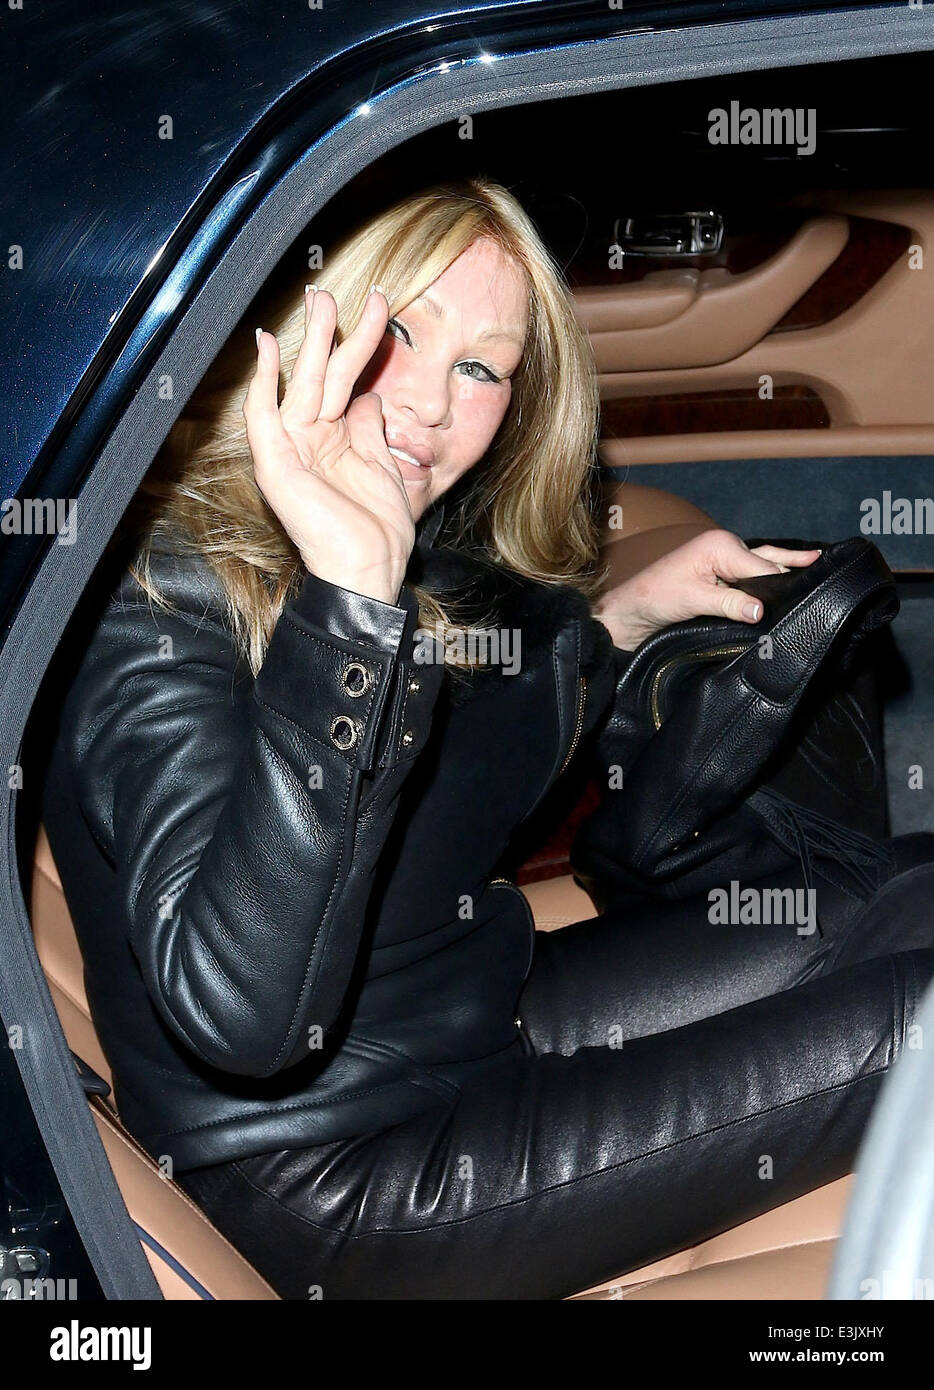 Lloyd Klein and Jocelyn Wildenstein leaving Boa Steakhouse together in West Hollywood  Featuring: Jocelyn Wildenstein Stock Photo